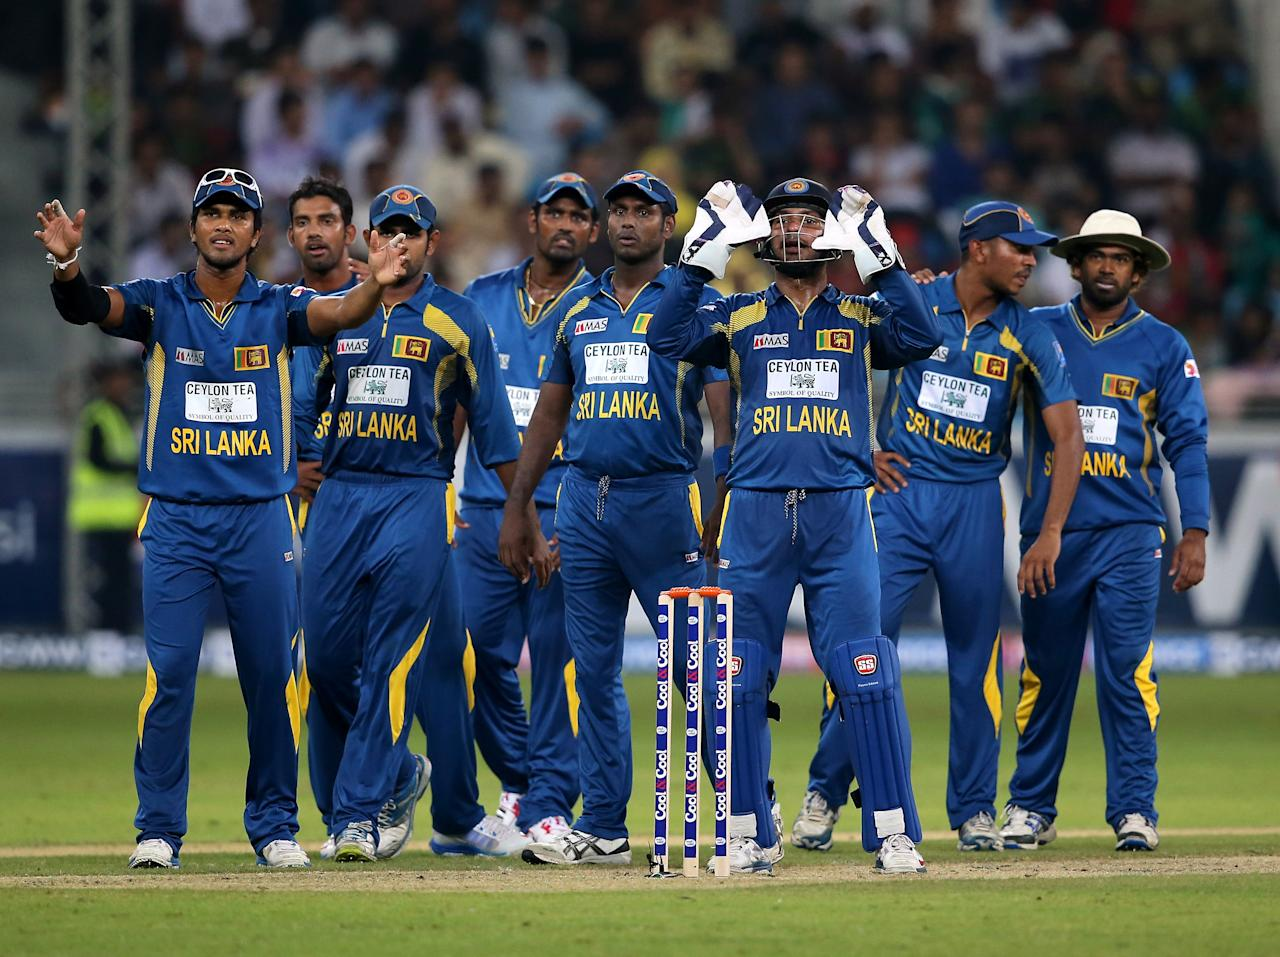 DUBAI, UNITED ARAB EMIRATES - DECEMBER 13:  Players of Sri Lanka wait for a pending run-out decision during the second Twenty20 International match between Pakistan and Sri Lanka at Dubai Sports City Cricket Stadium on December 13, 2013 in Dubai, United Arab Emirates.  (Photo by Francois Nel/Getty Images)